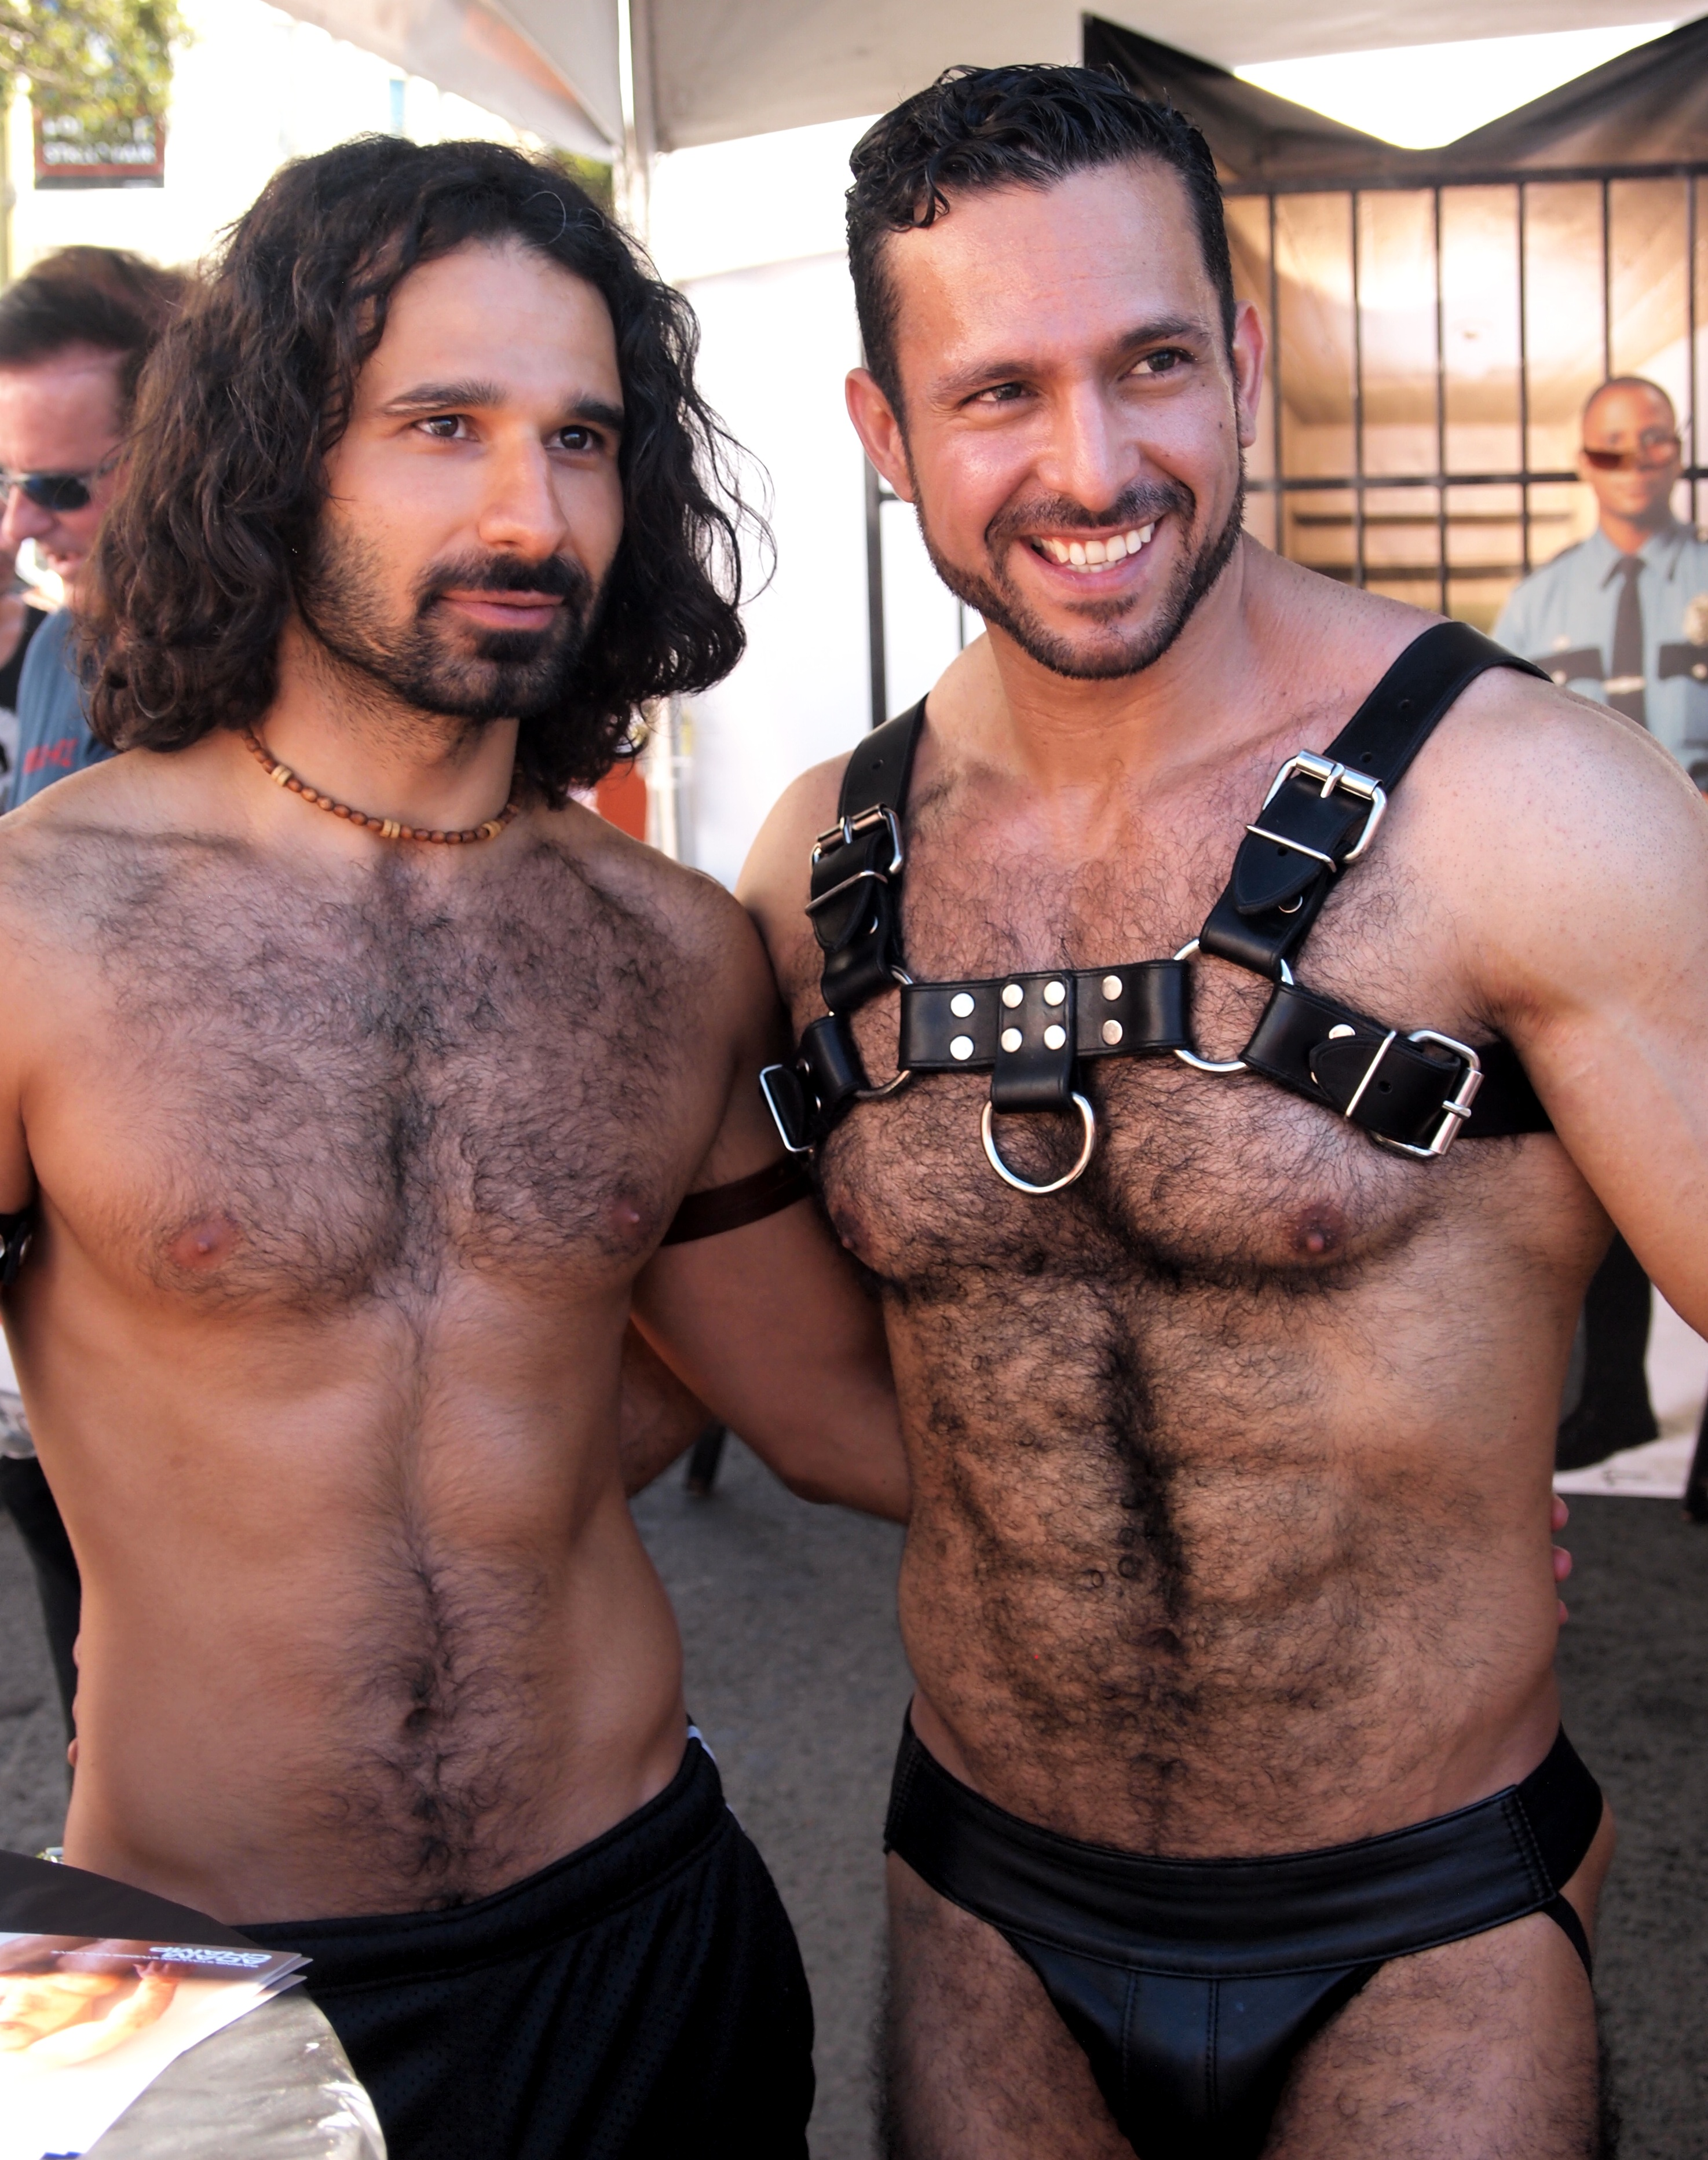 Images Of Hairy Gods Hot Men Original Huge Size For Your Viewing